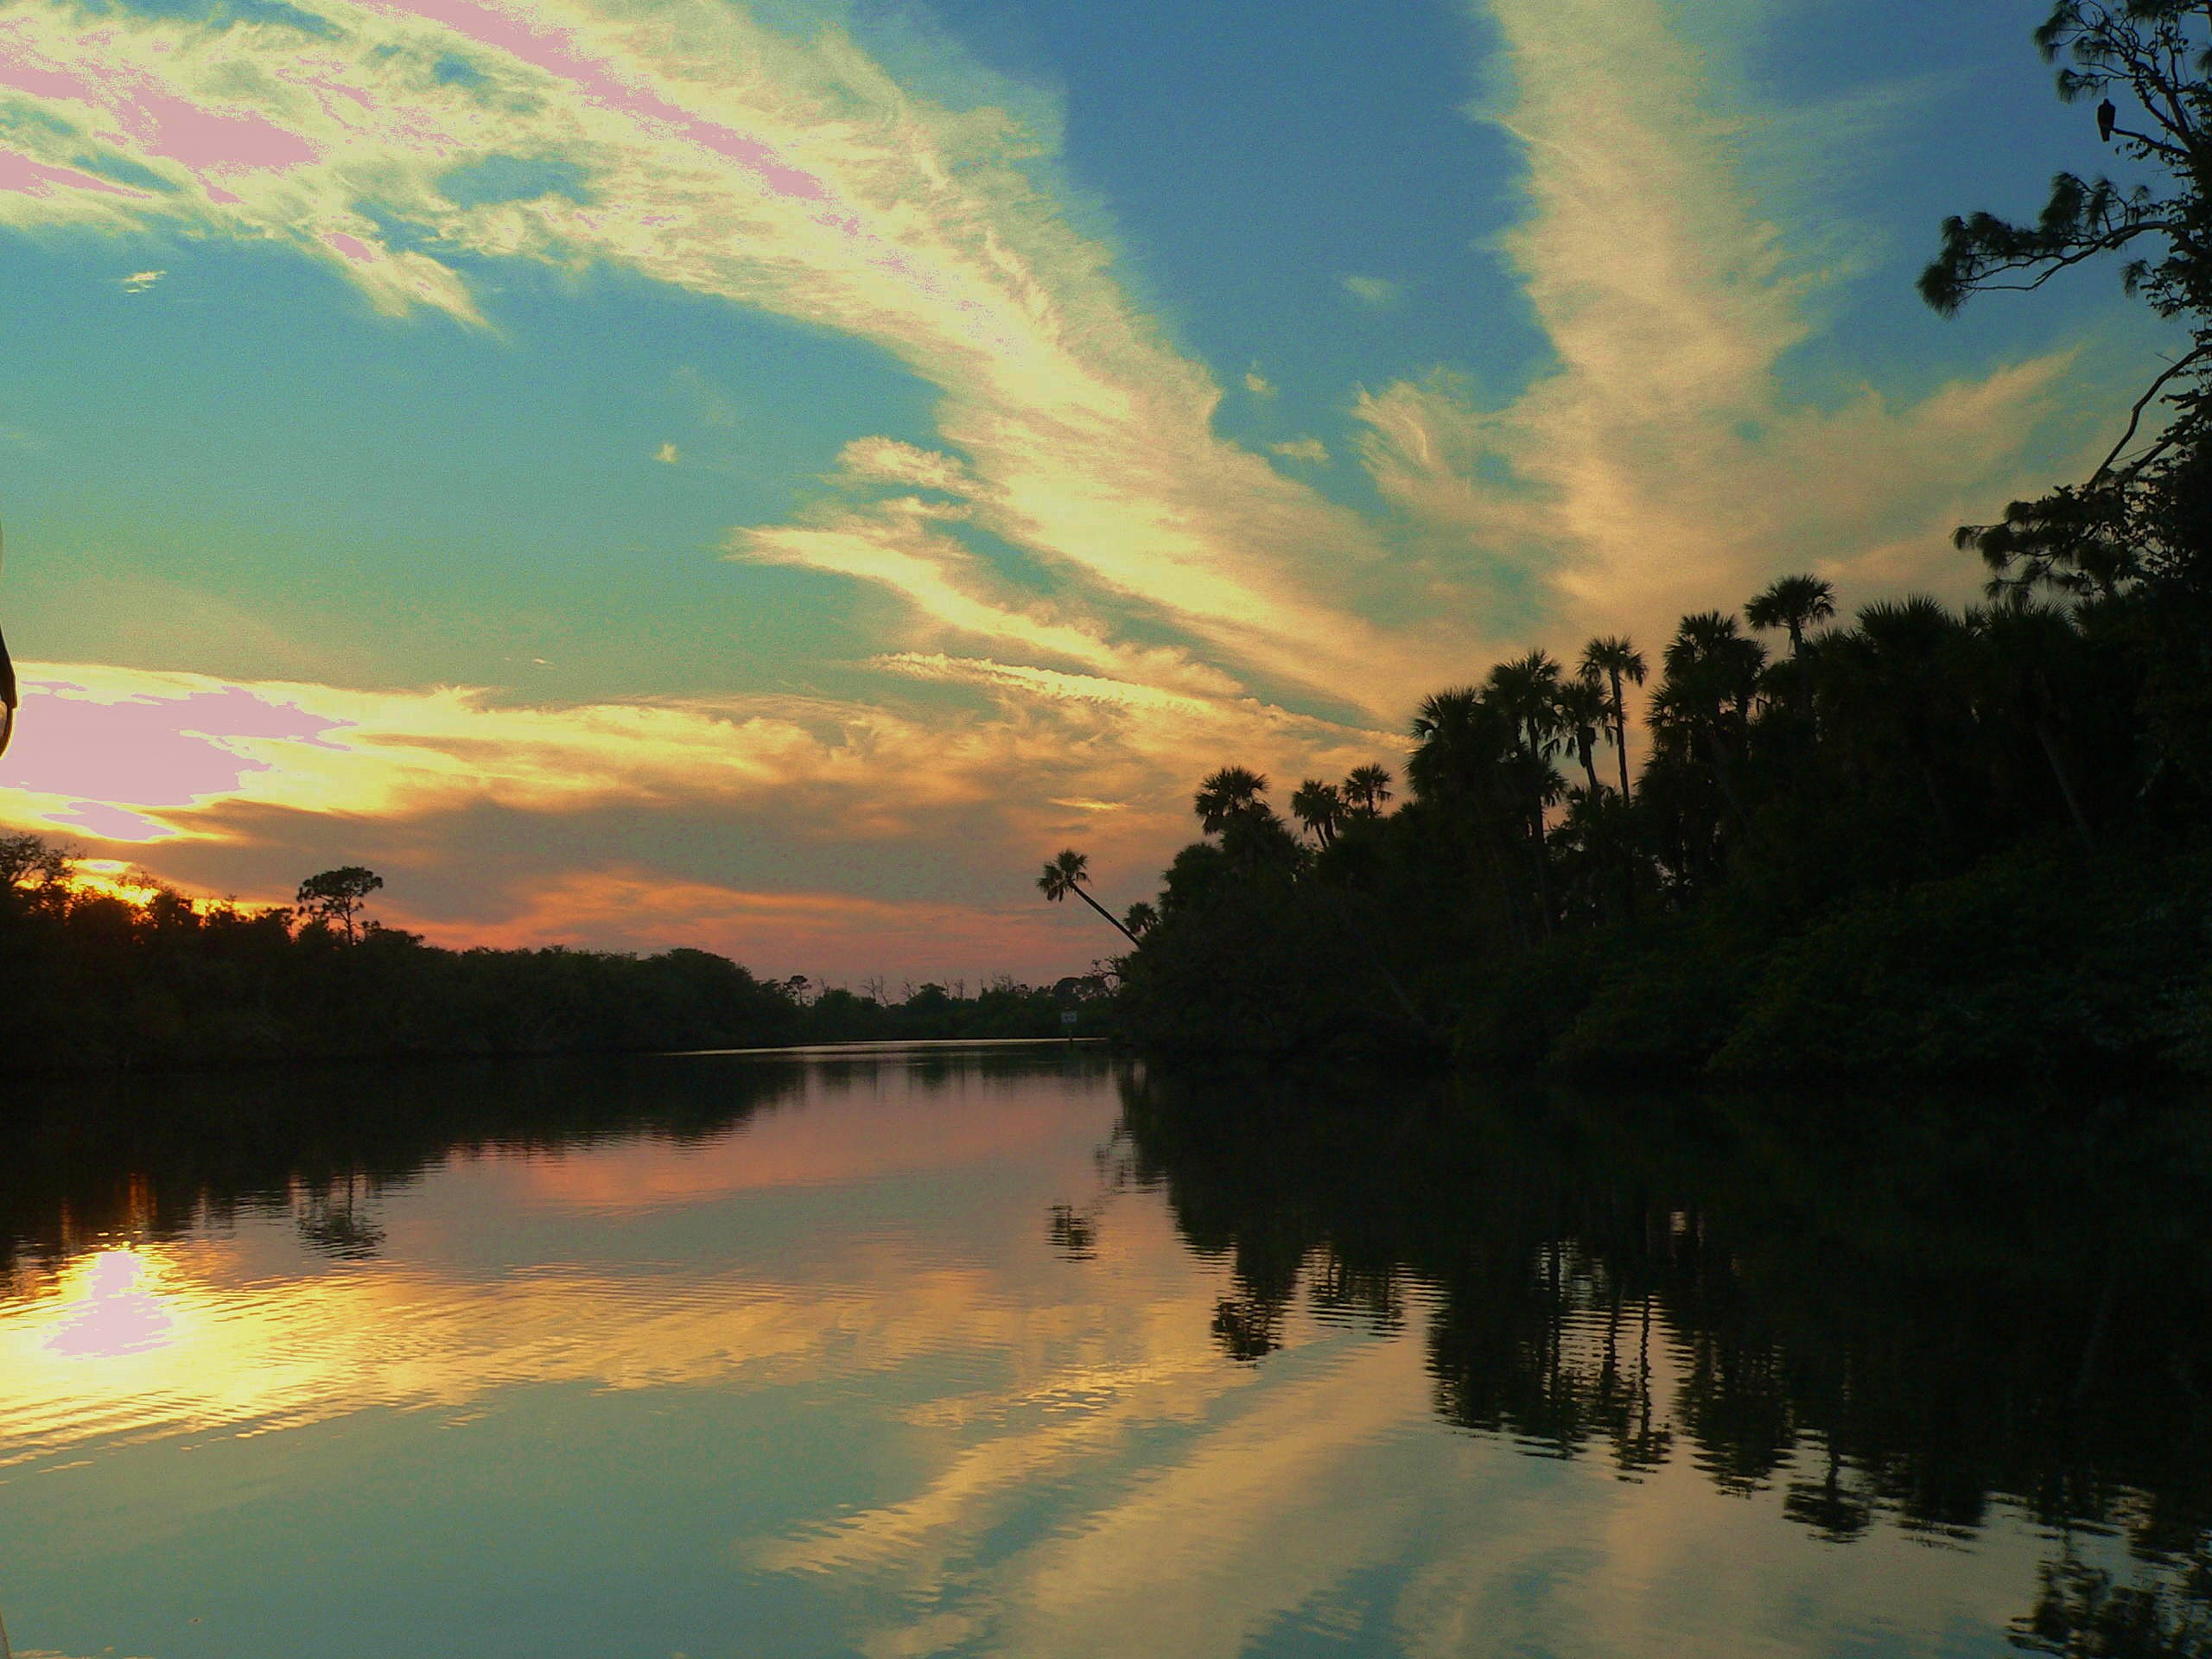 Sunset on St. Lucie River